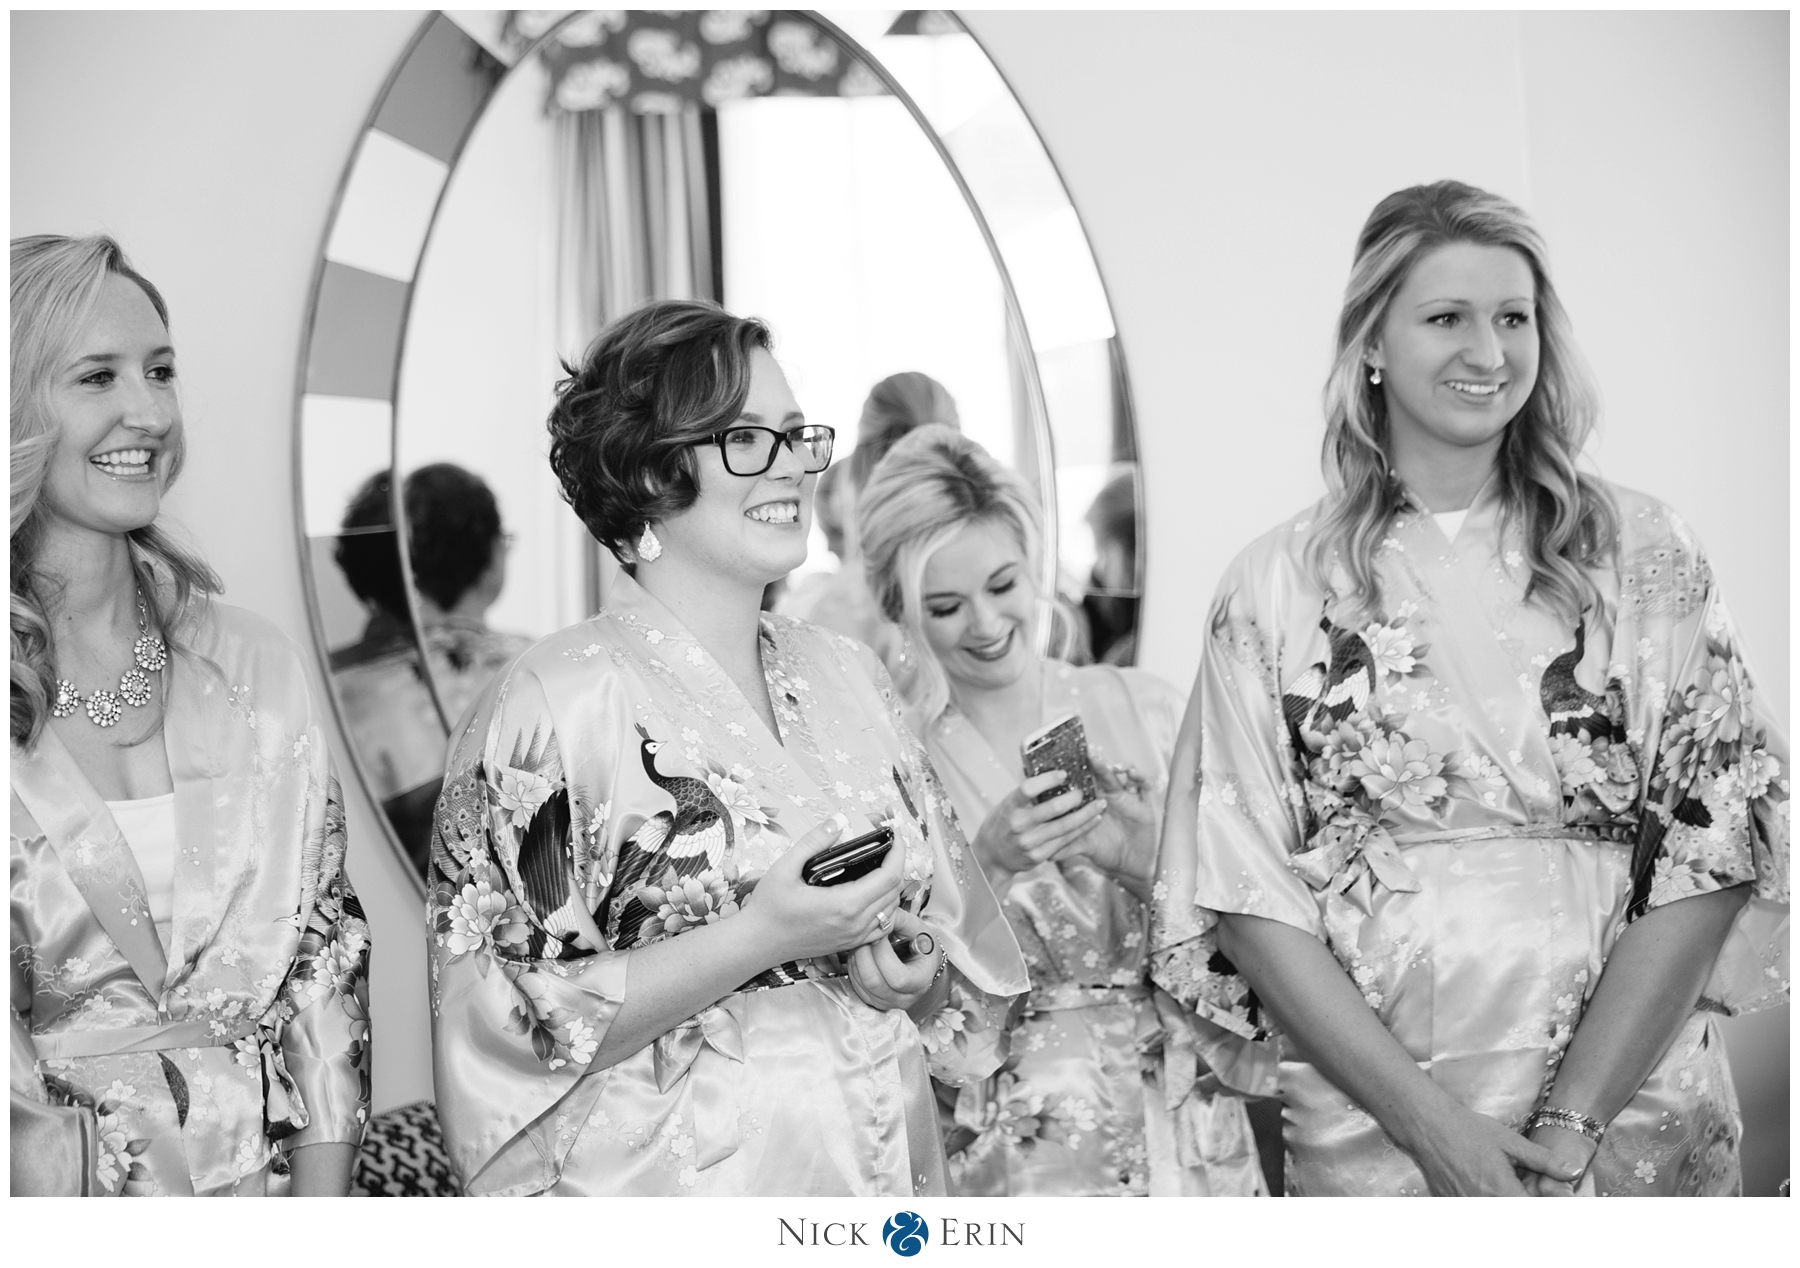 Donner_Photography_Washington DC Wedding_Rachel & Taylor_0015